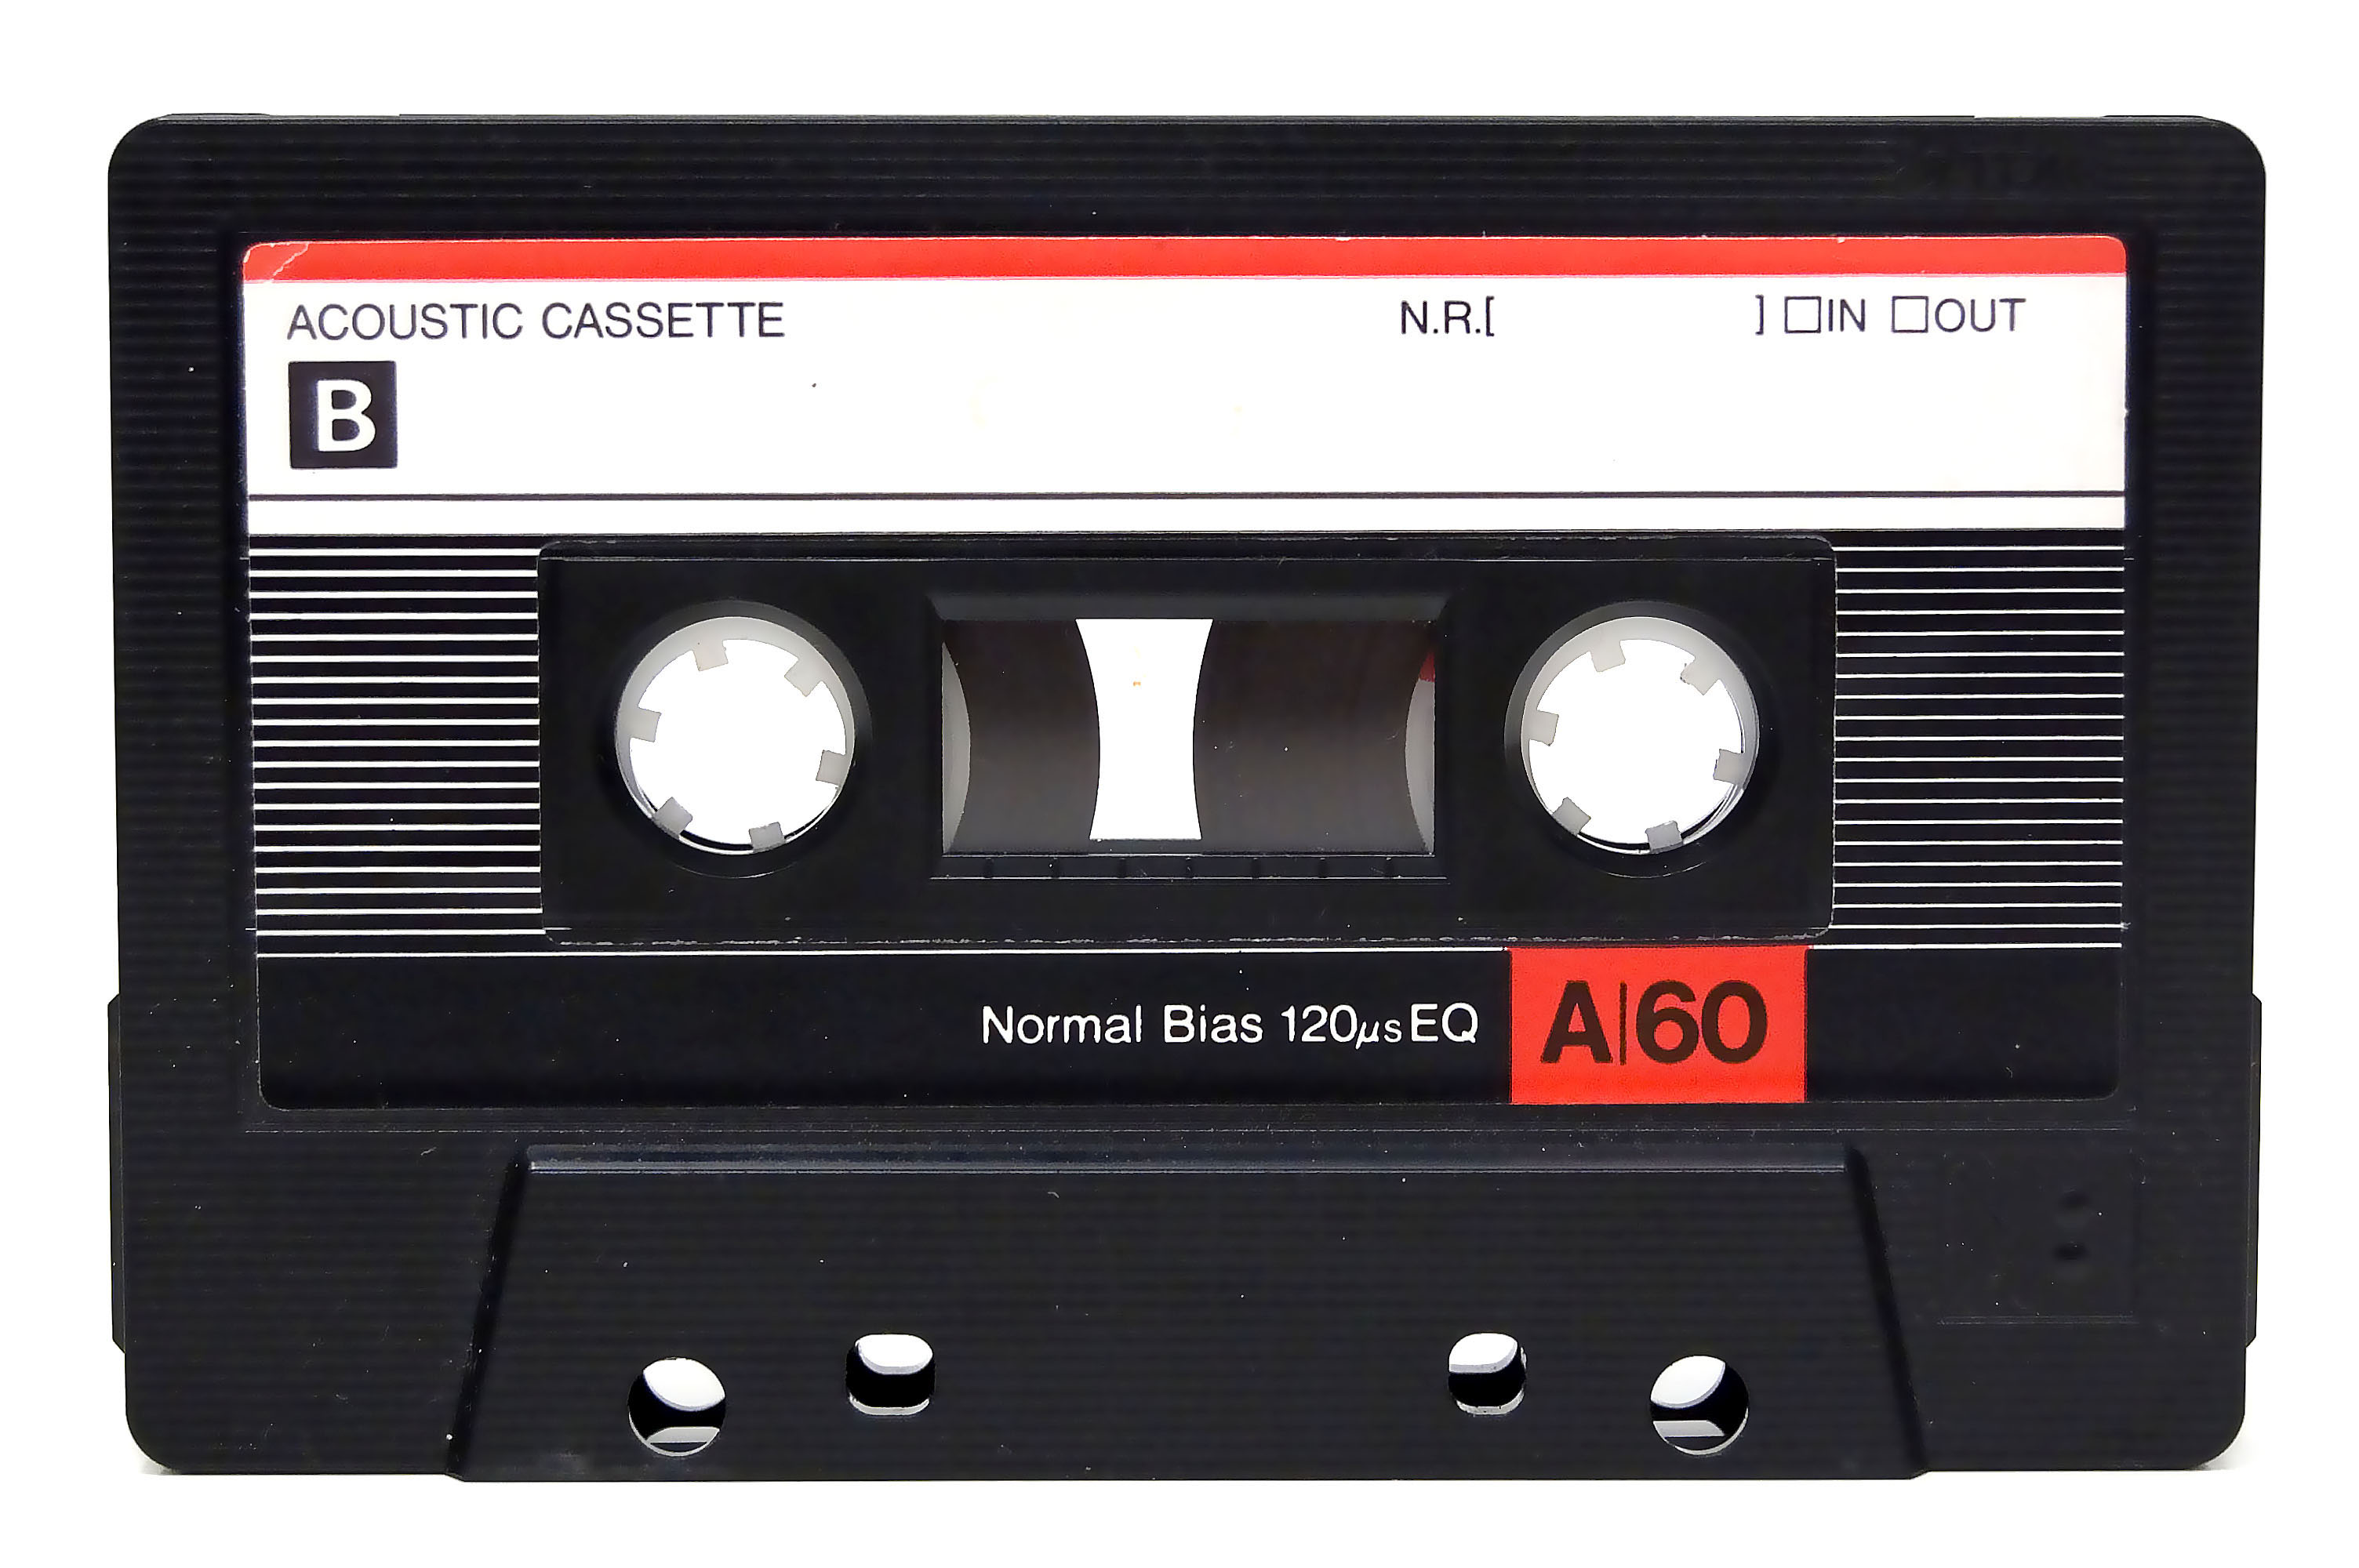 Audio Cassette Tape, 1993. - The Farsighted